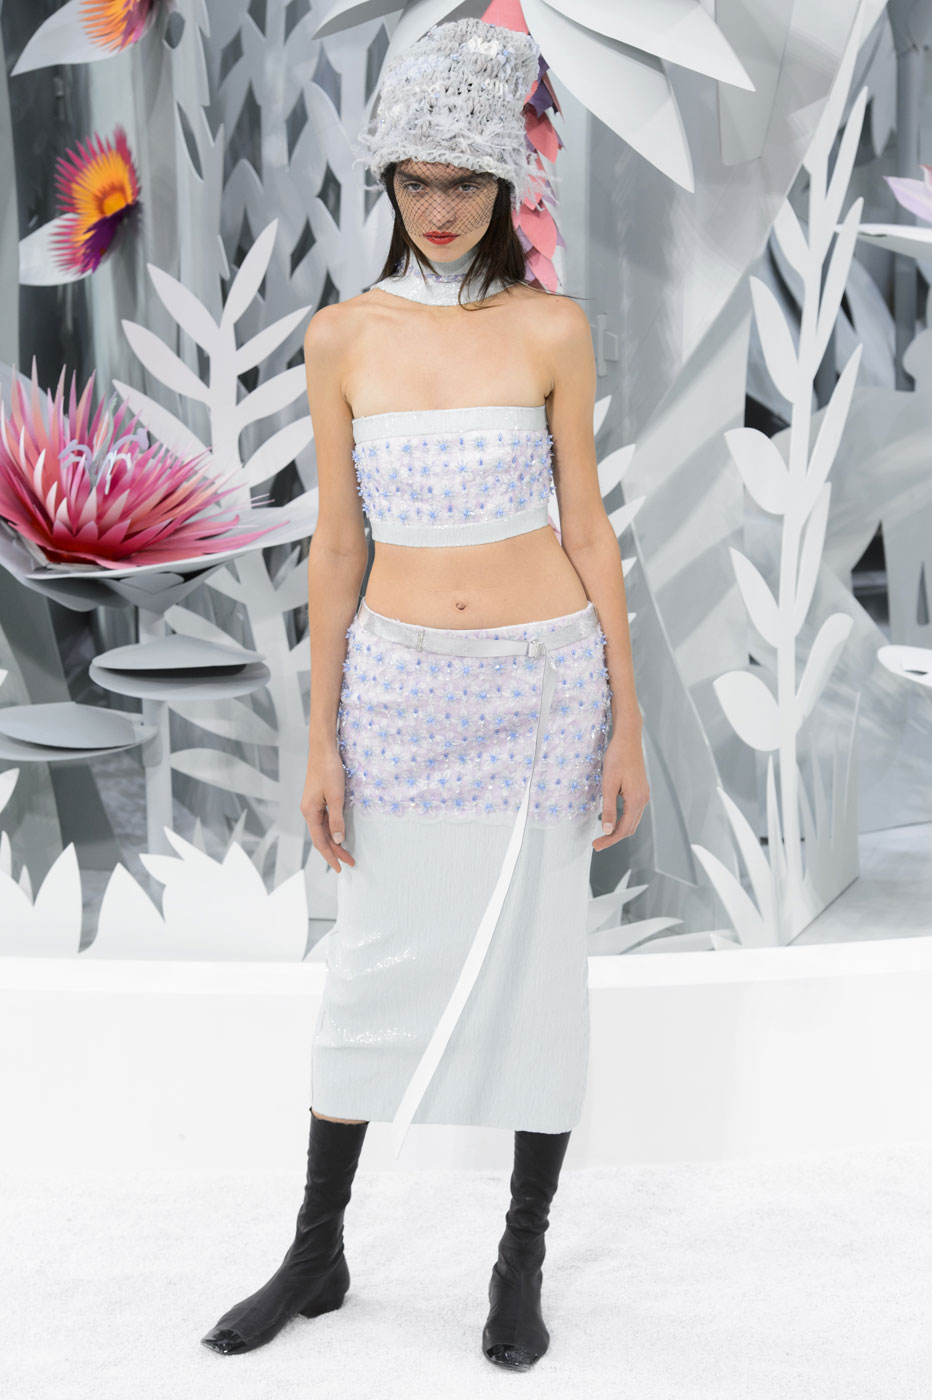 Chanel-fashion-runway-show-haute-couture-paris-spring-summer-2015-the-impression-123